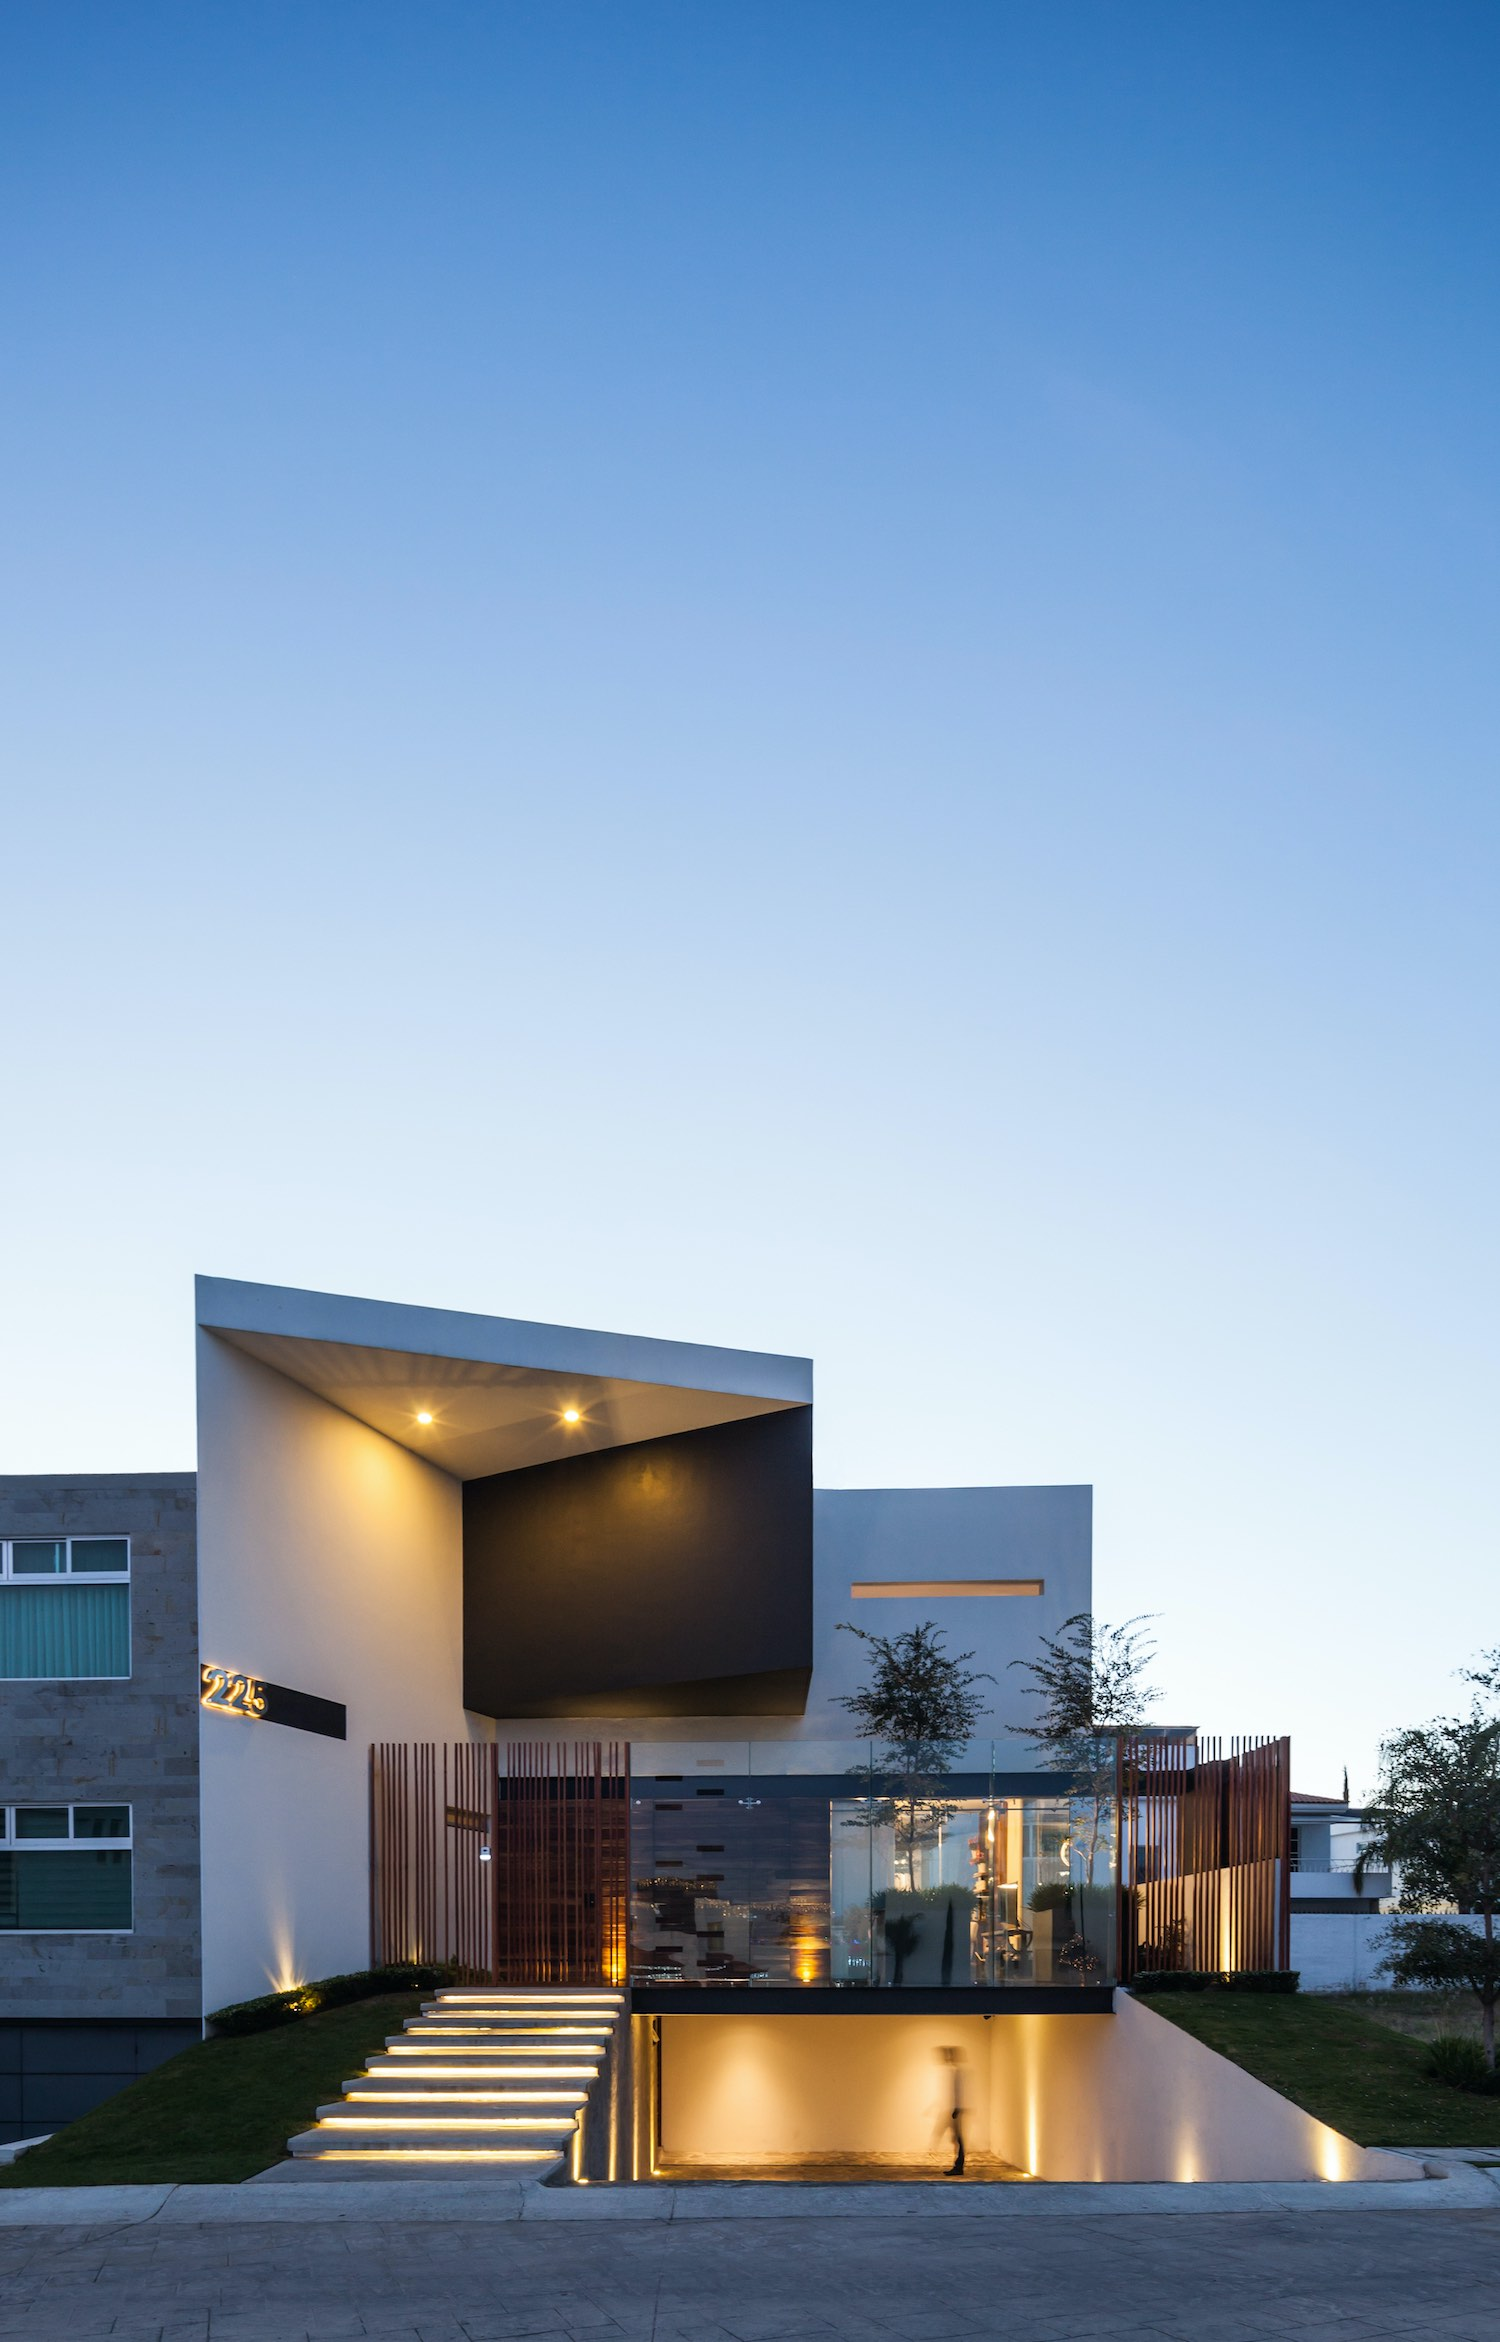 modern house in Mexico with illumination at night